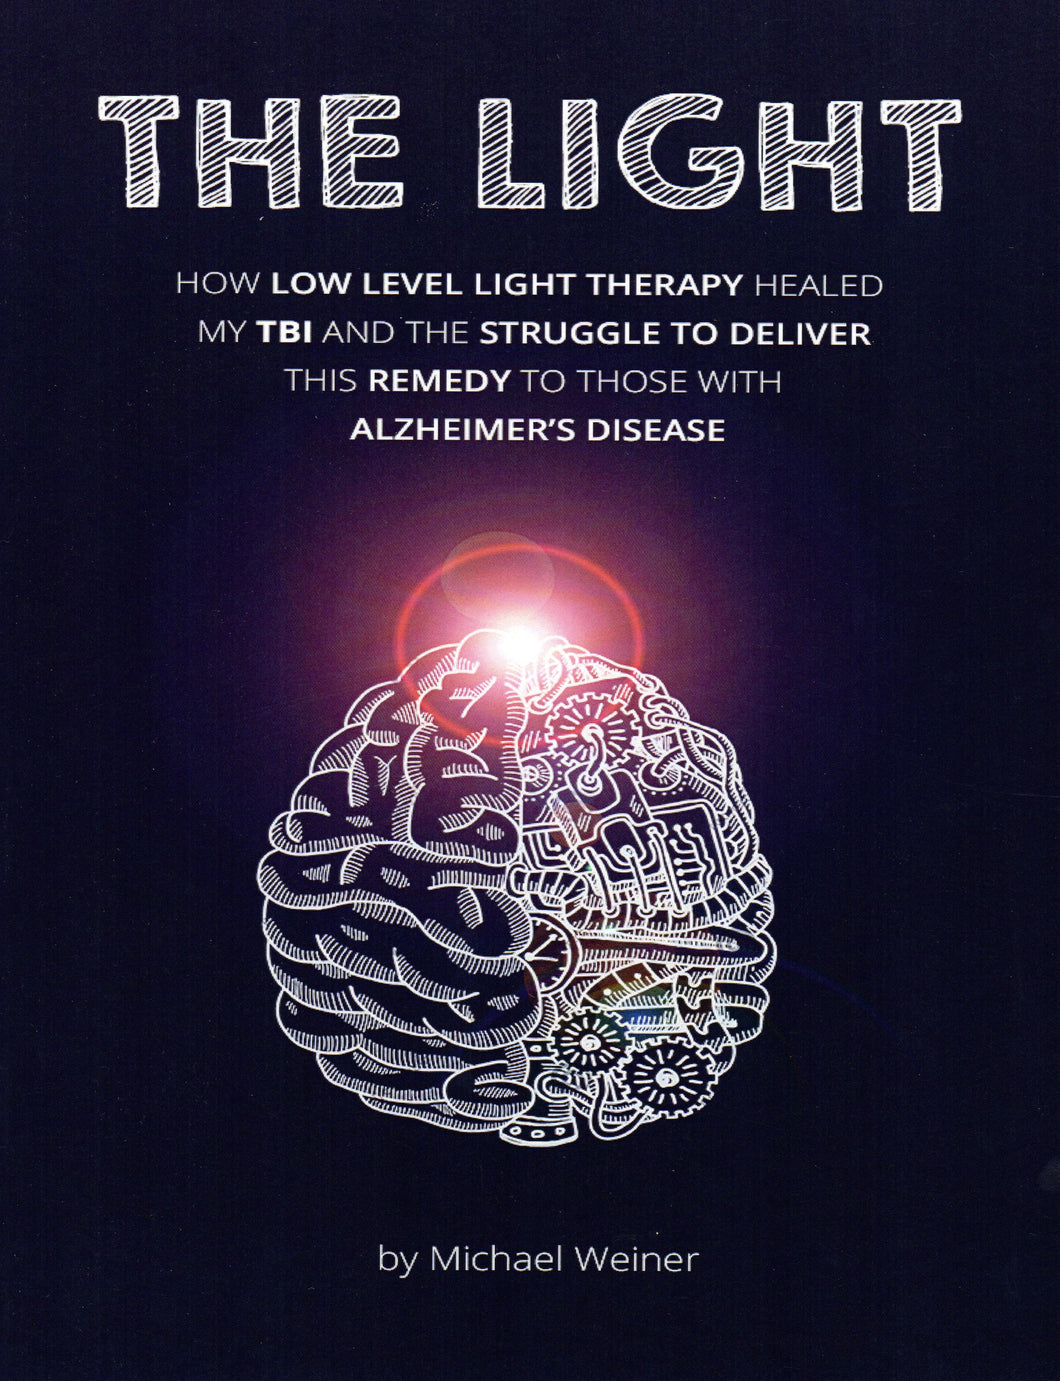 The Light: How Light Therapy Healed TBI and Alzheimer's Disease  by Michael Weiner